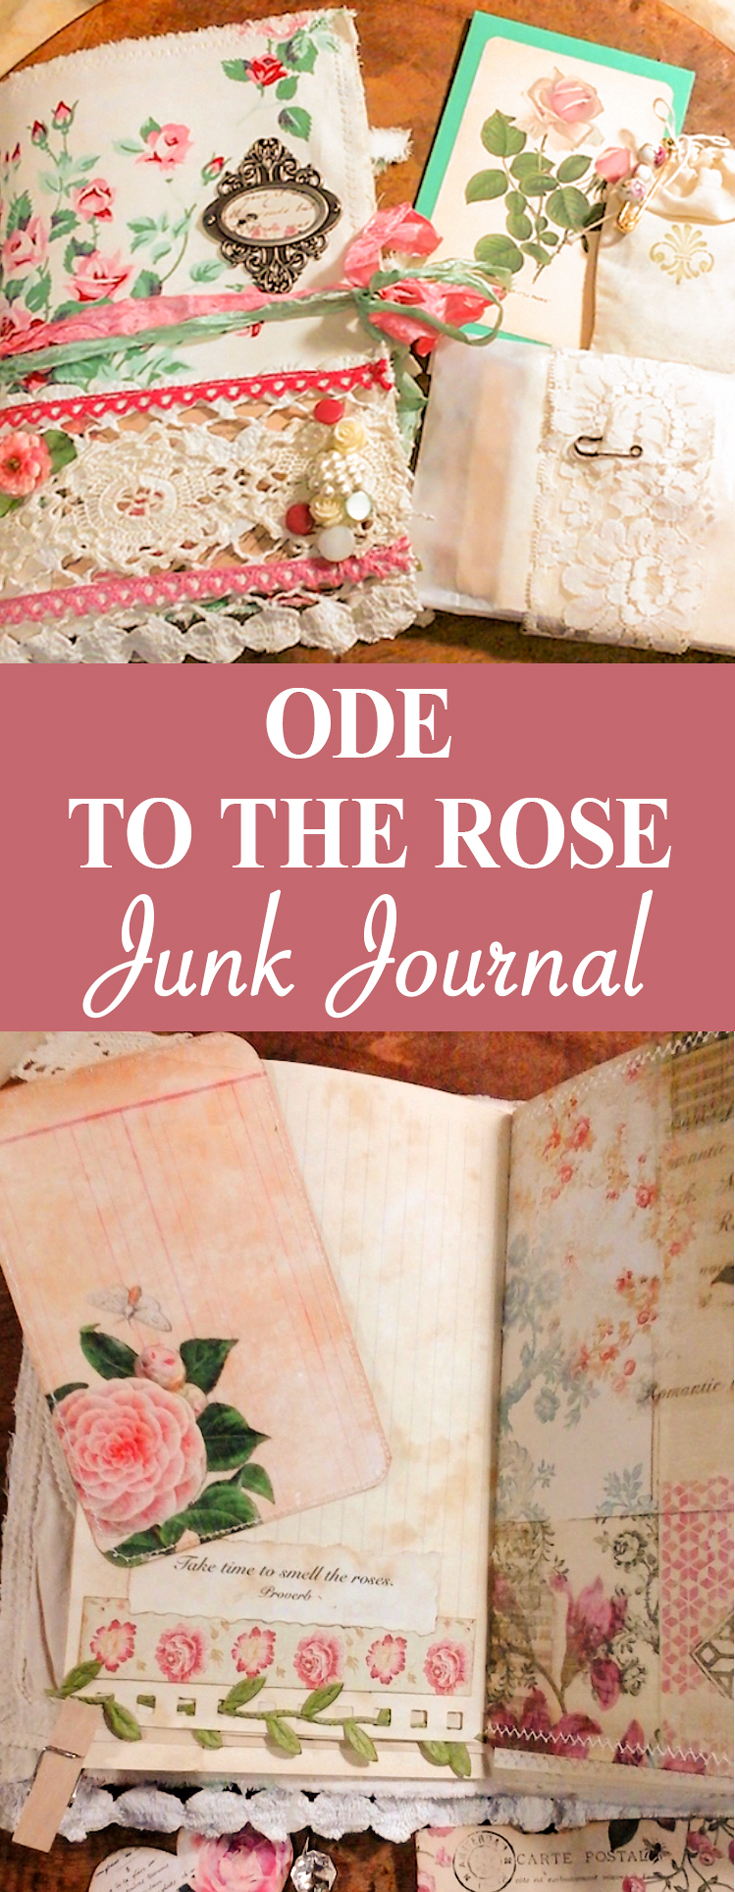 Ode to the Rose Pin